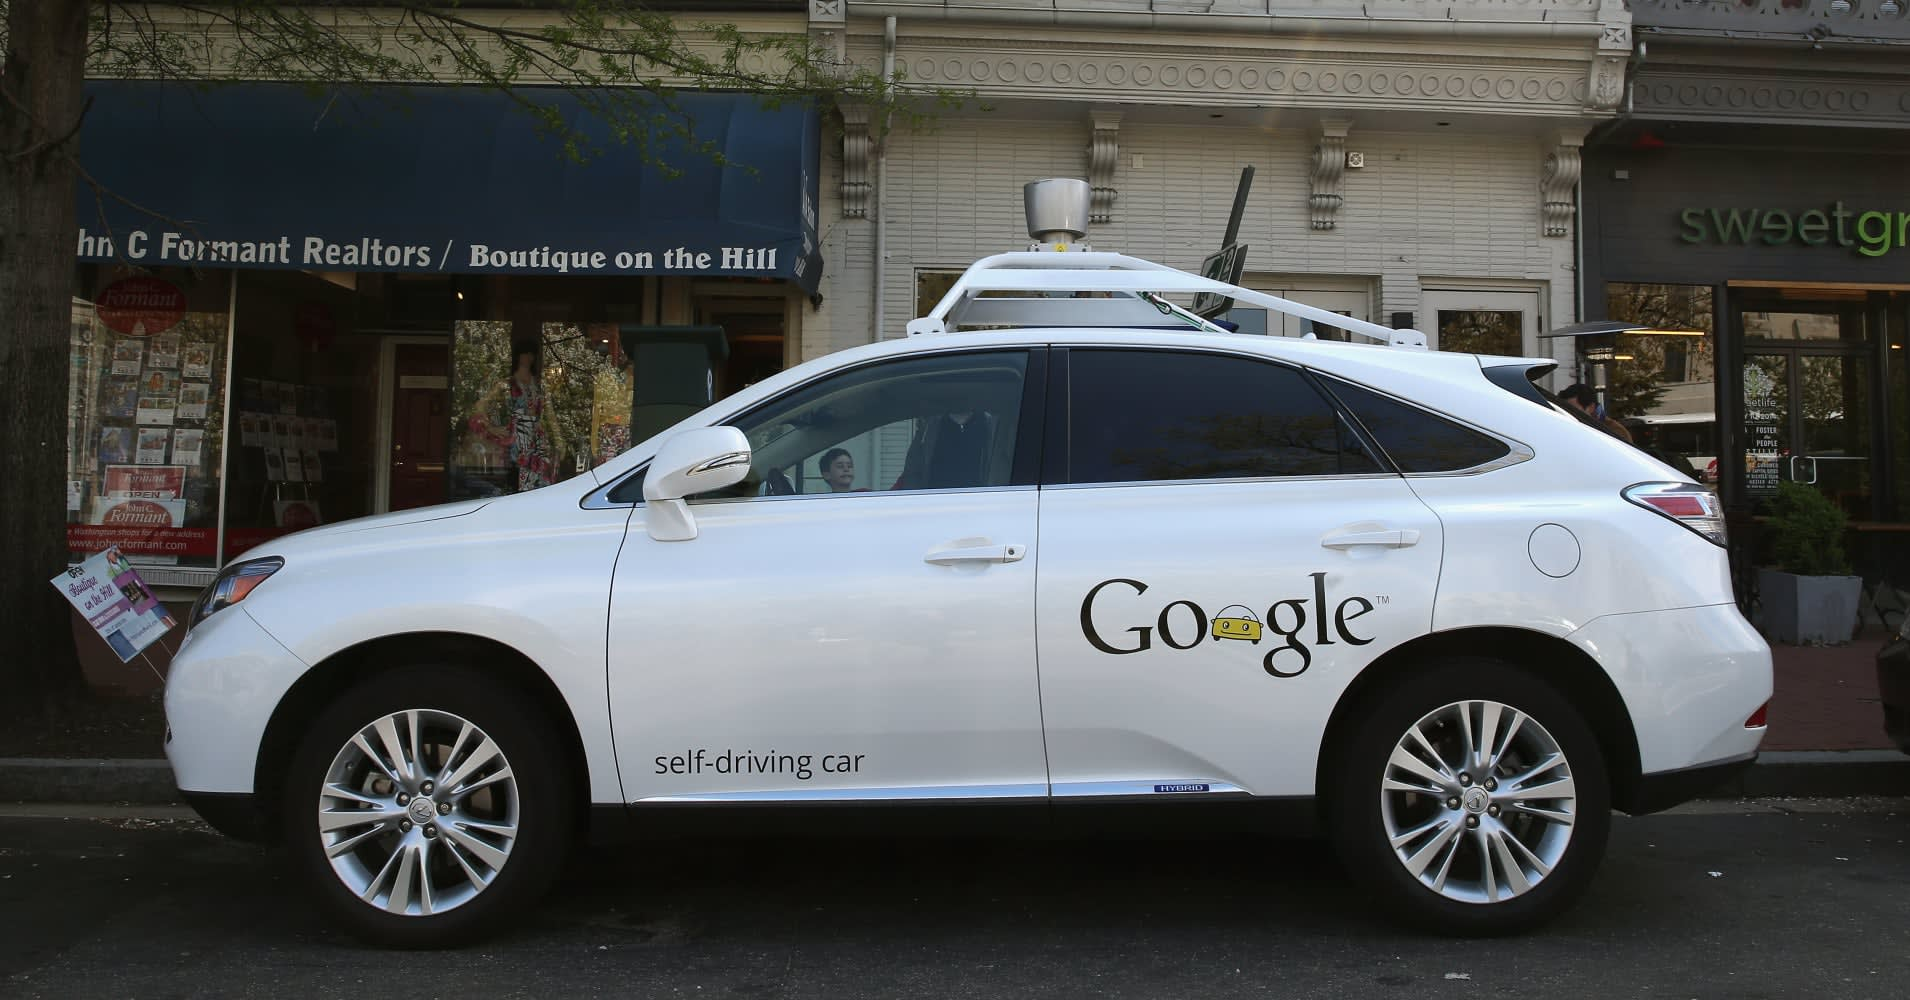 Google's self-driving car caused an accident, so what now?